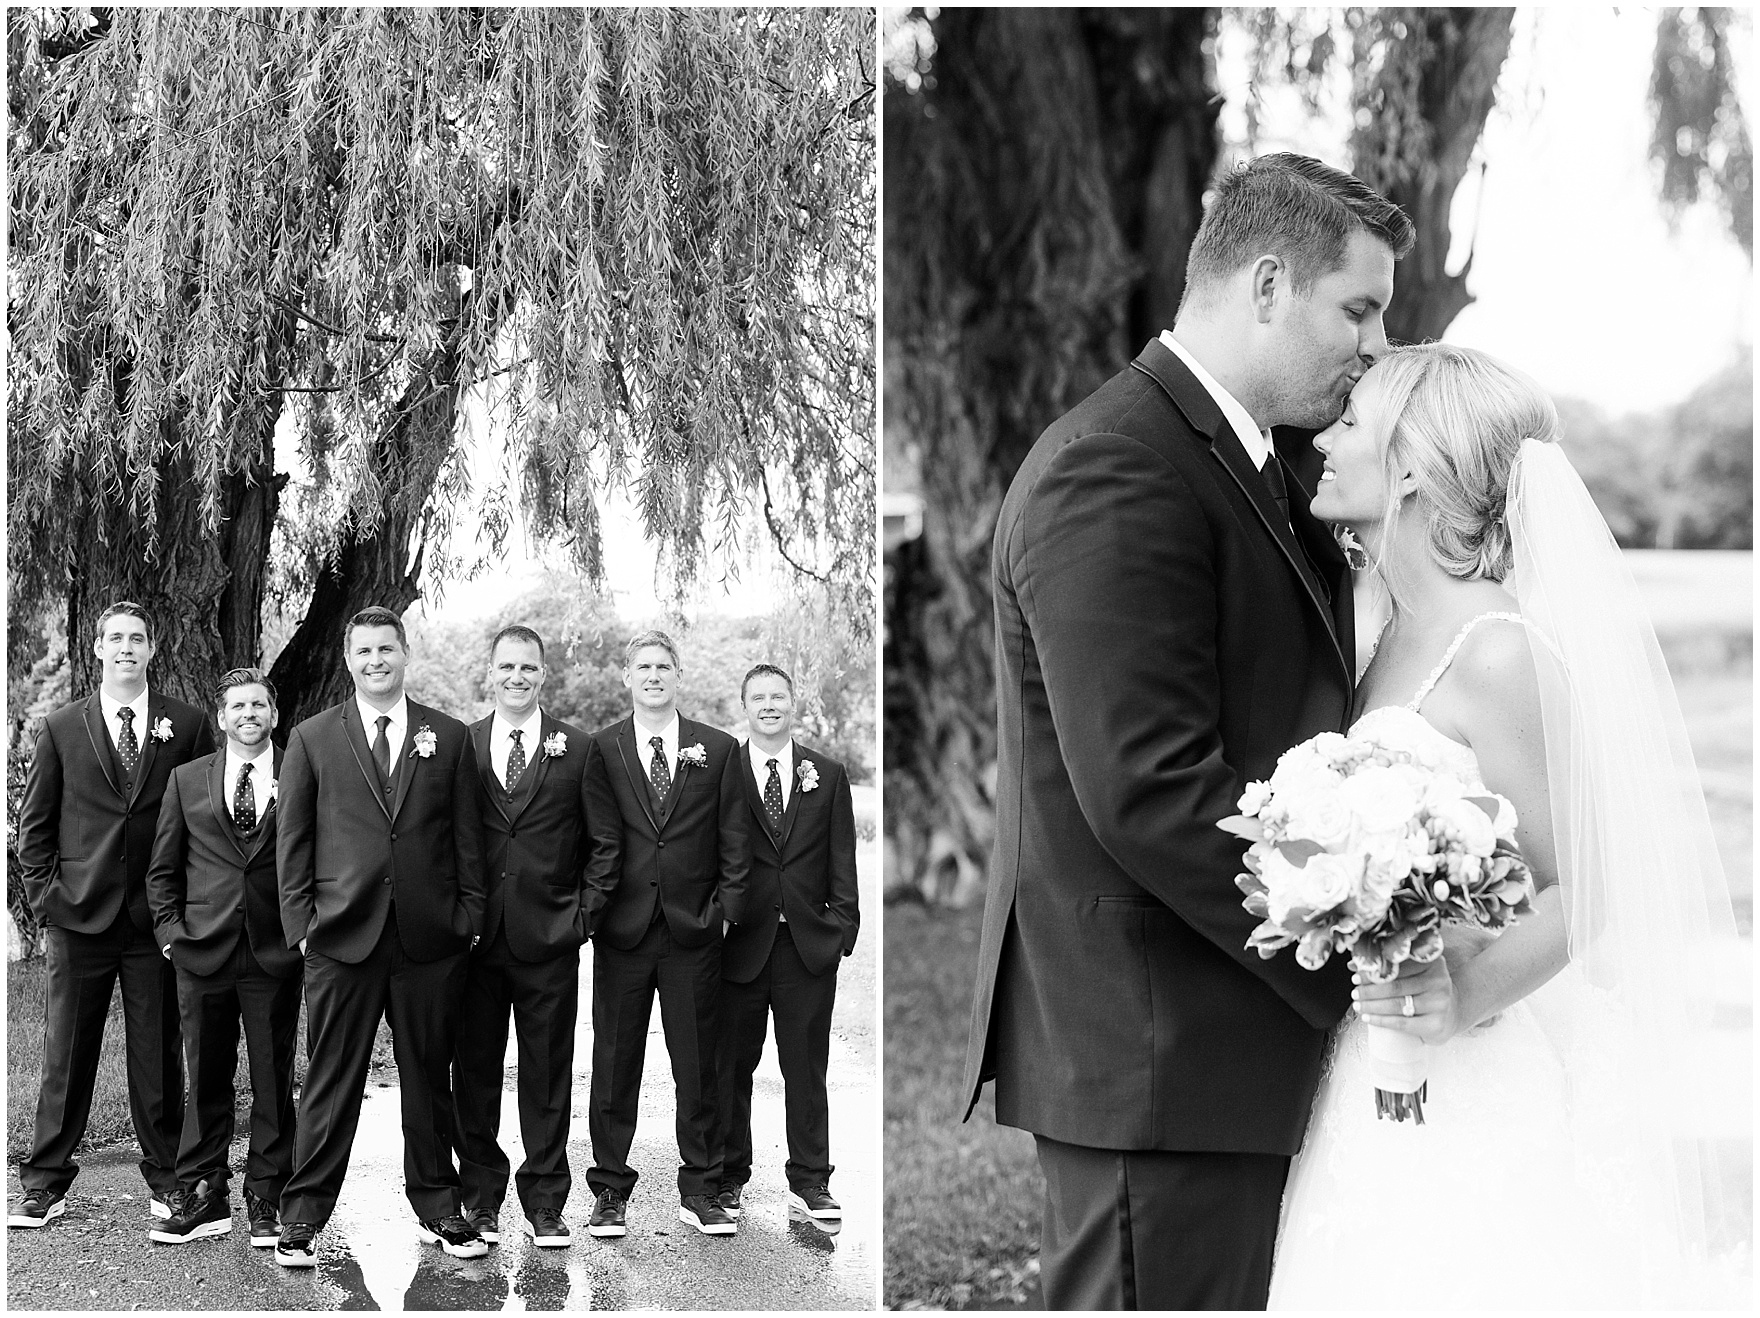 A bride and groom take photos at their Itasca Country Club Illinois wedding.